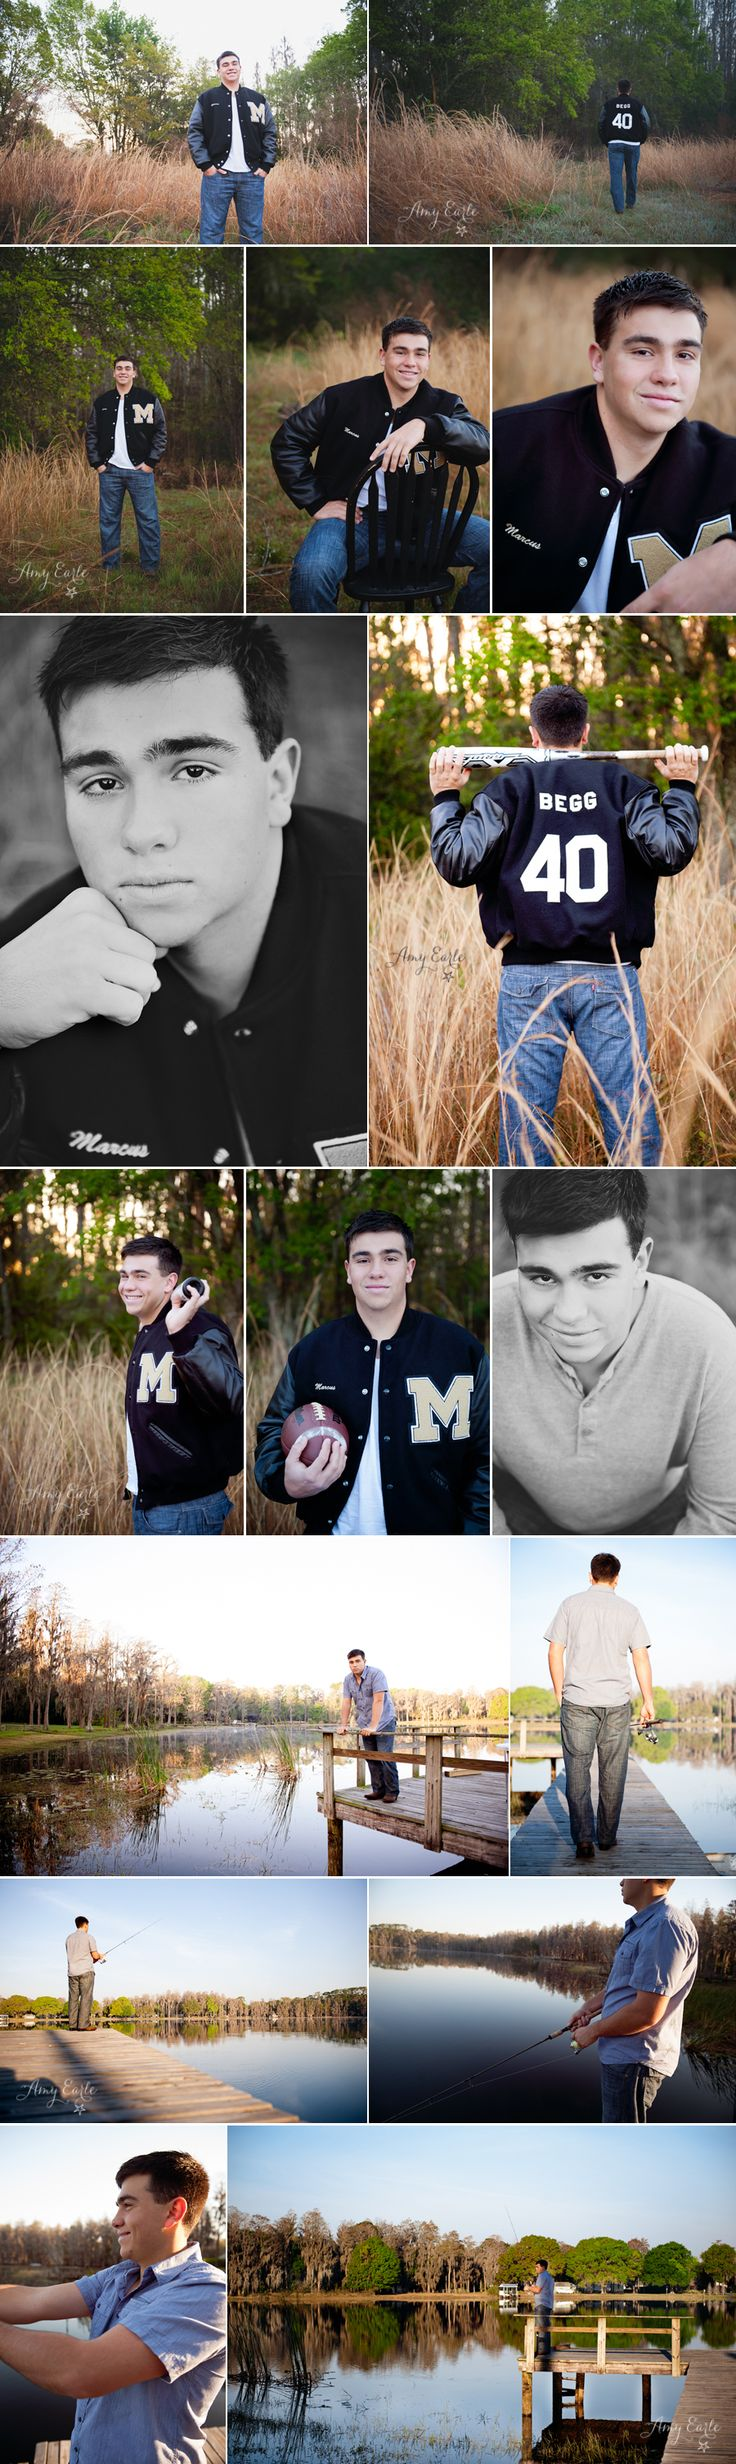 boy senior pic poses. Can't believe it's that time for us.